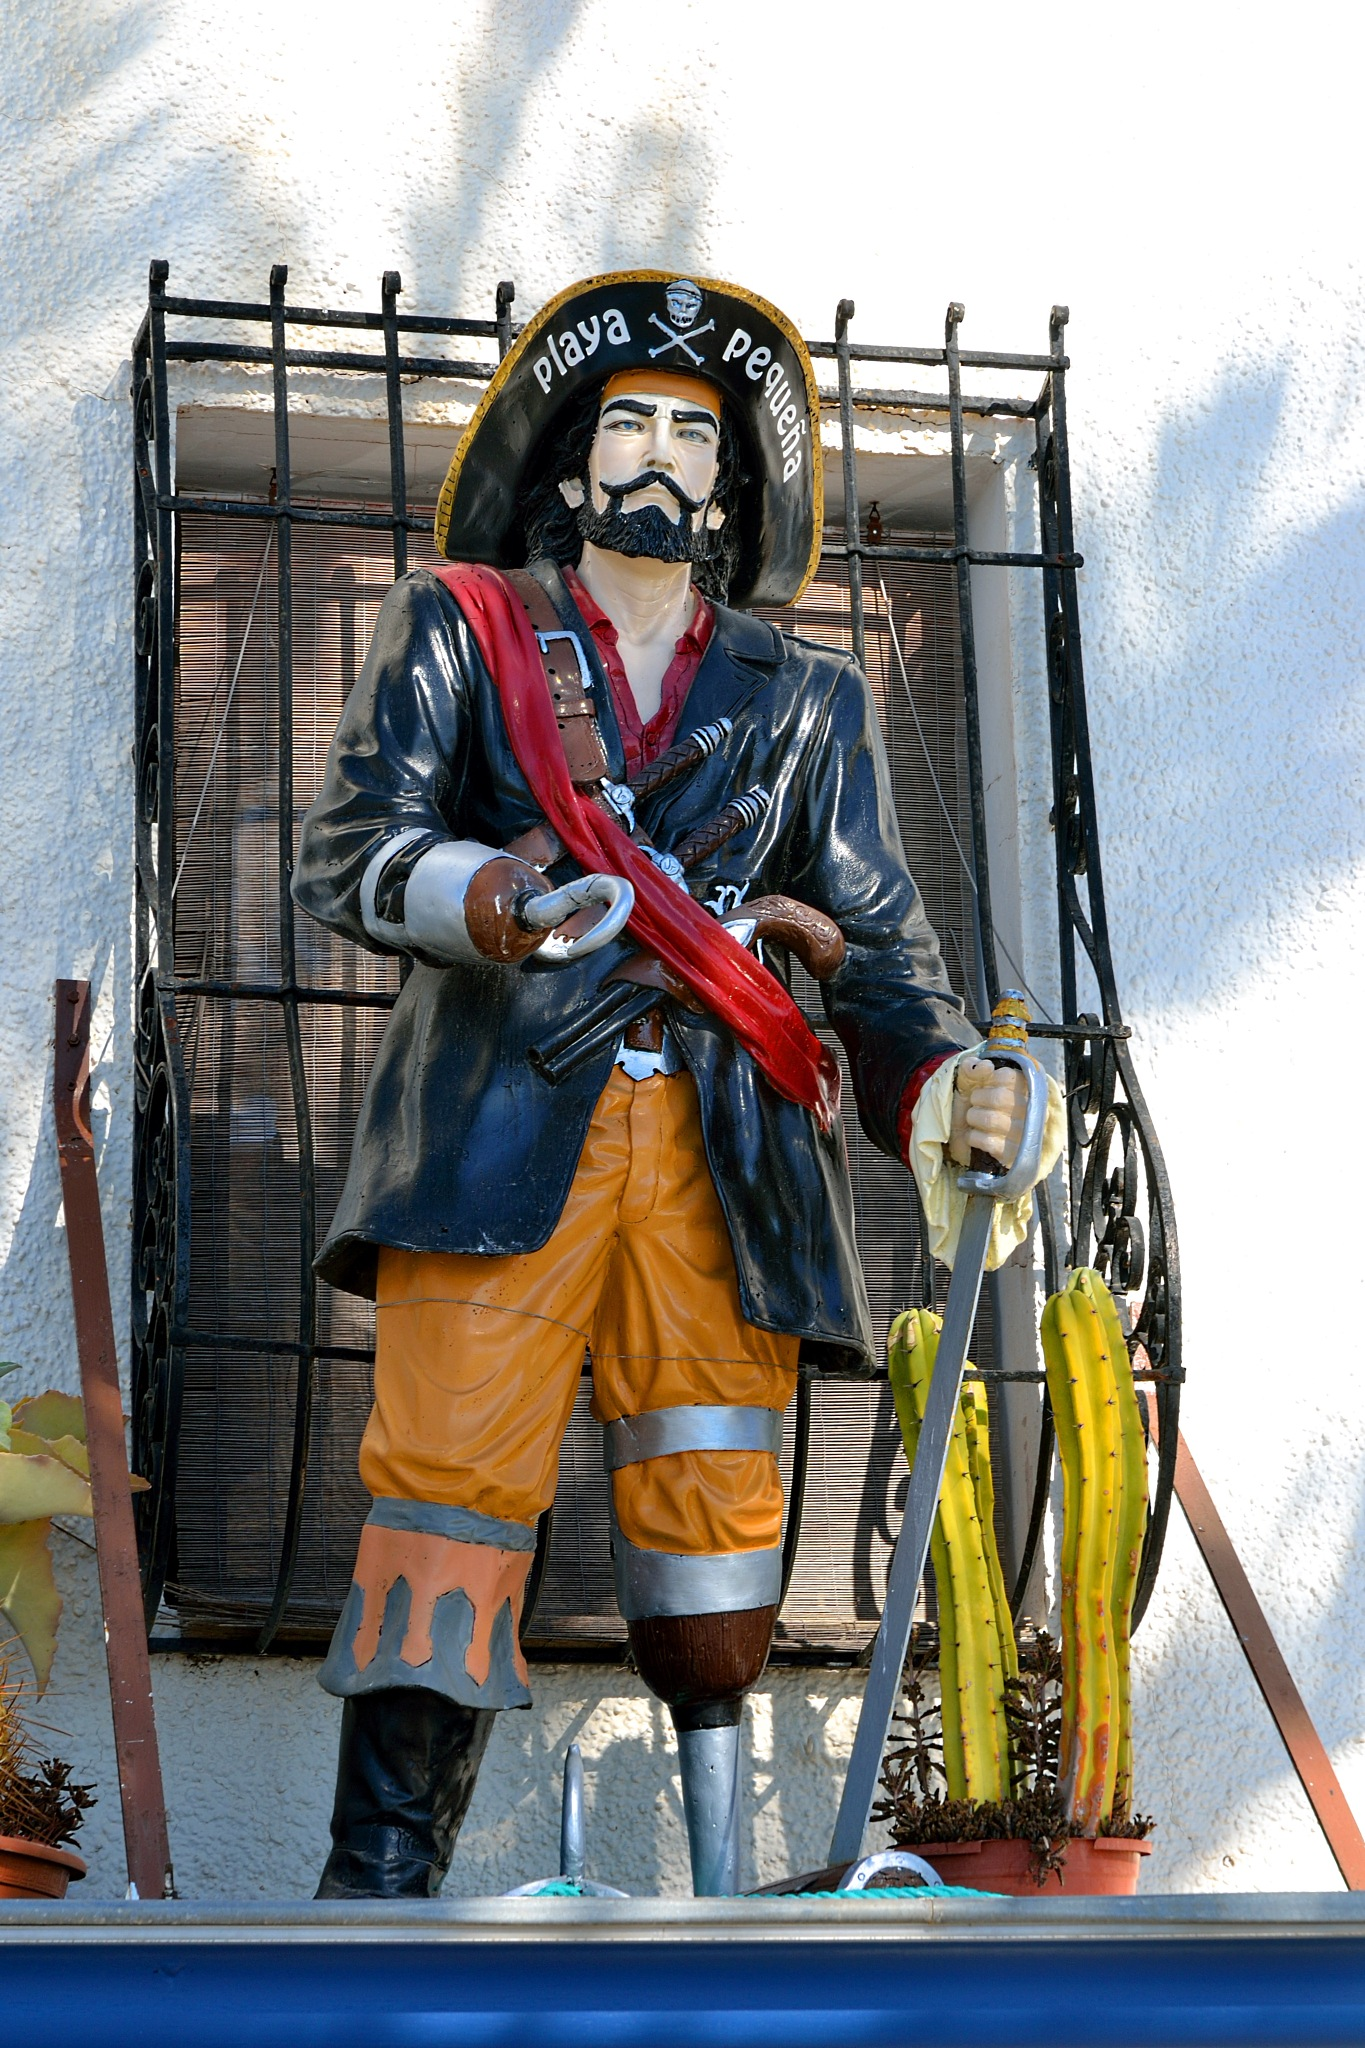 Un Pirata en la Azotea (Restaurado) - A Pirate on the Roof (Refurbished) - Un pirata sul tetto (rist by cjcastromm